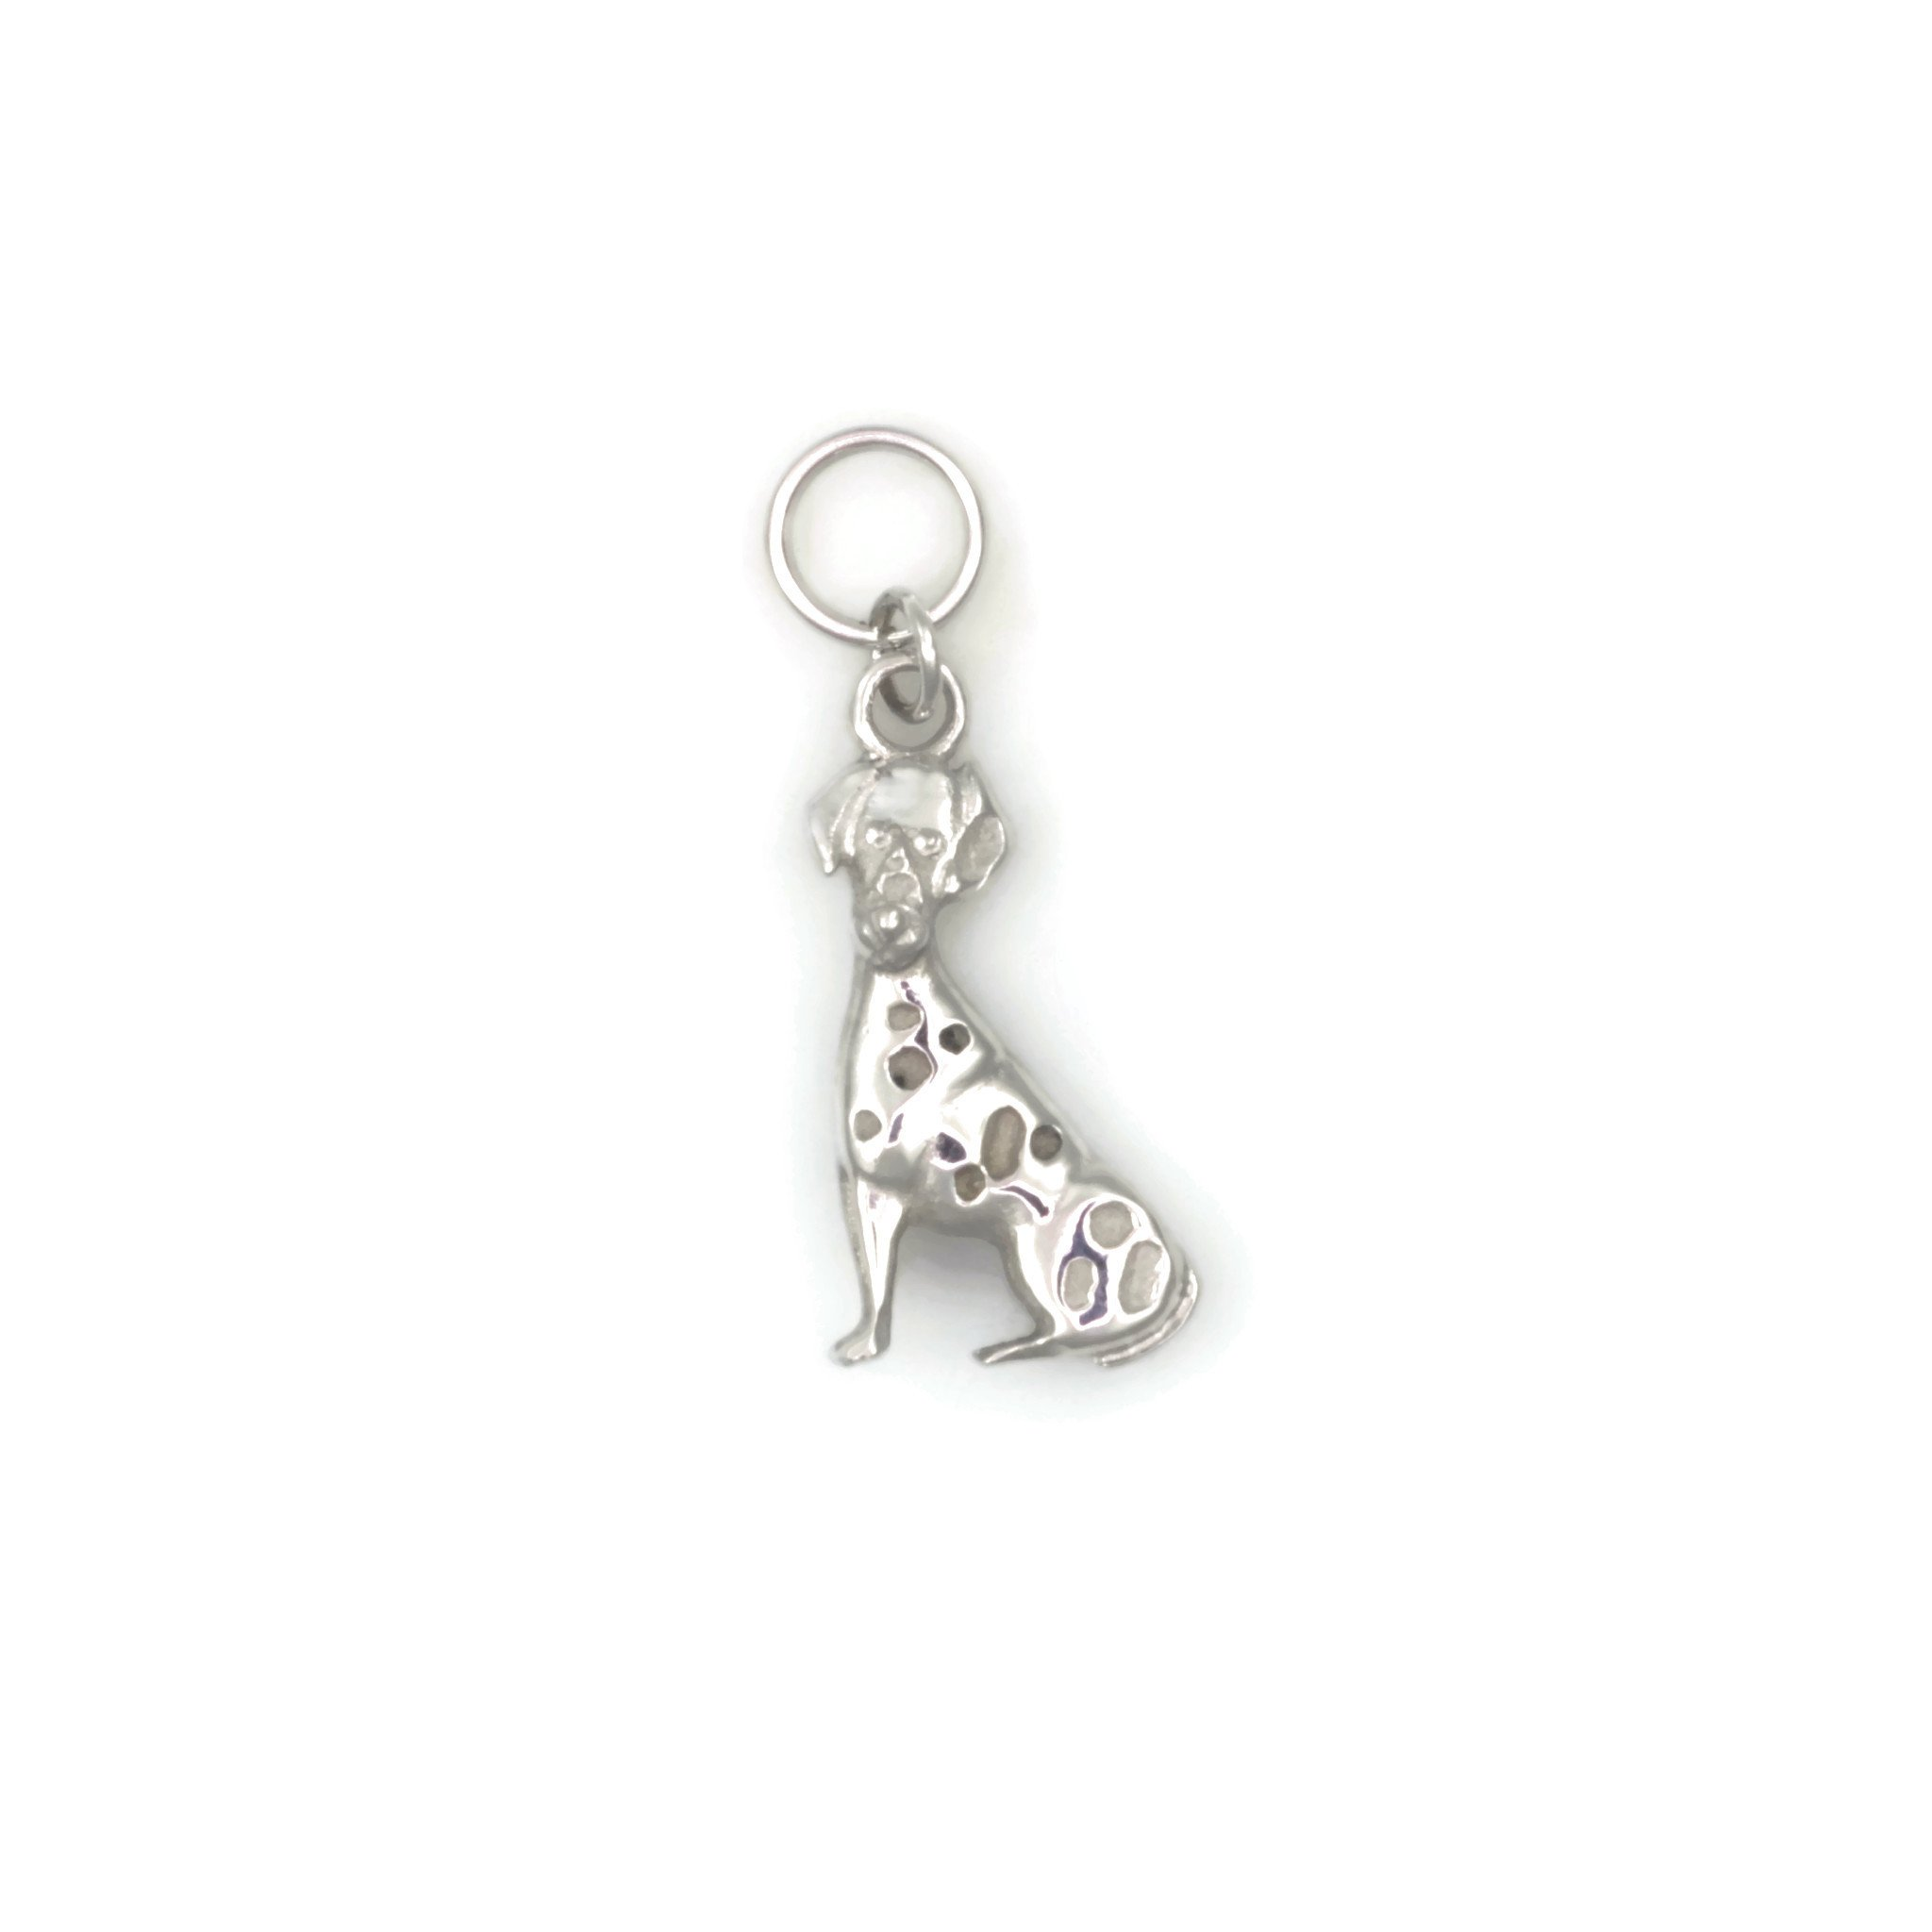 14Kt White Gold Dalmatian Charm, 14Kt White Gold Dalmatian Pendant, Donna Pizarro, Animal Whimsey Collection